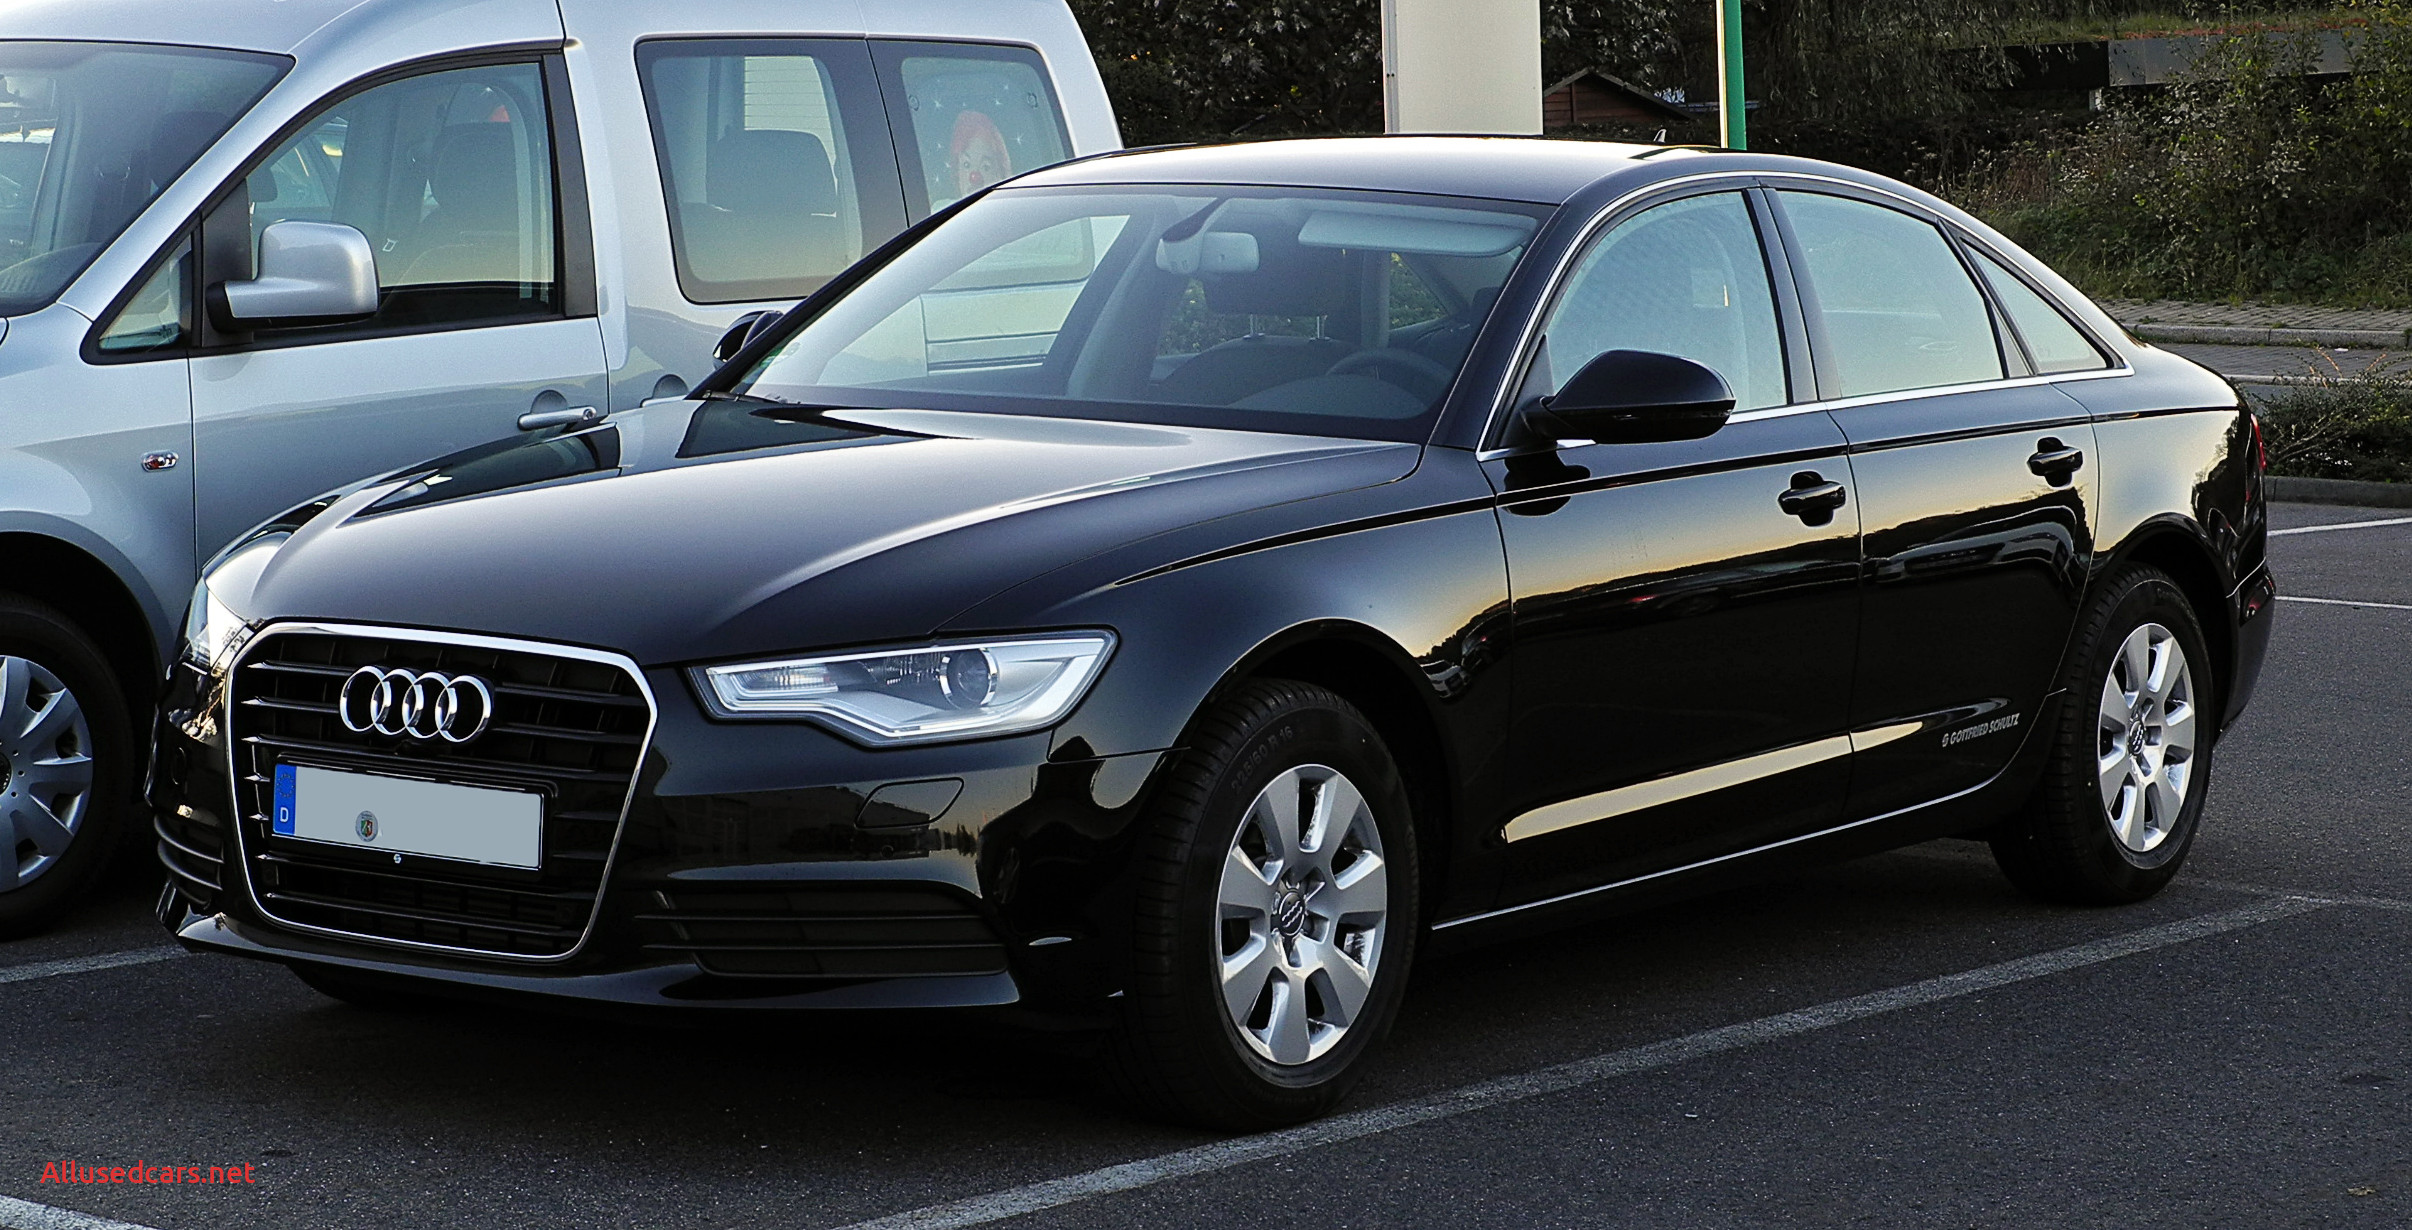 Used Audi A6 Elegant Audi A6 2020 Prices In Pakistan & Reviews